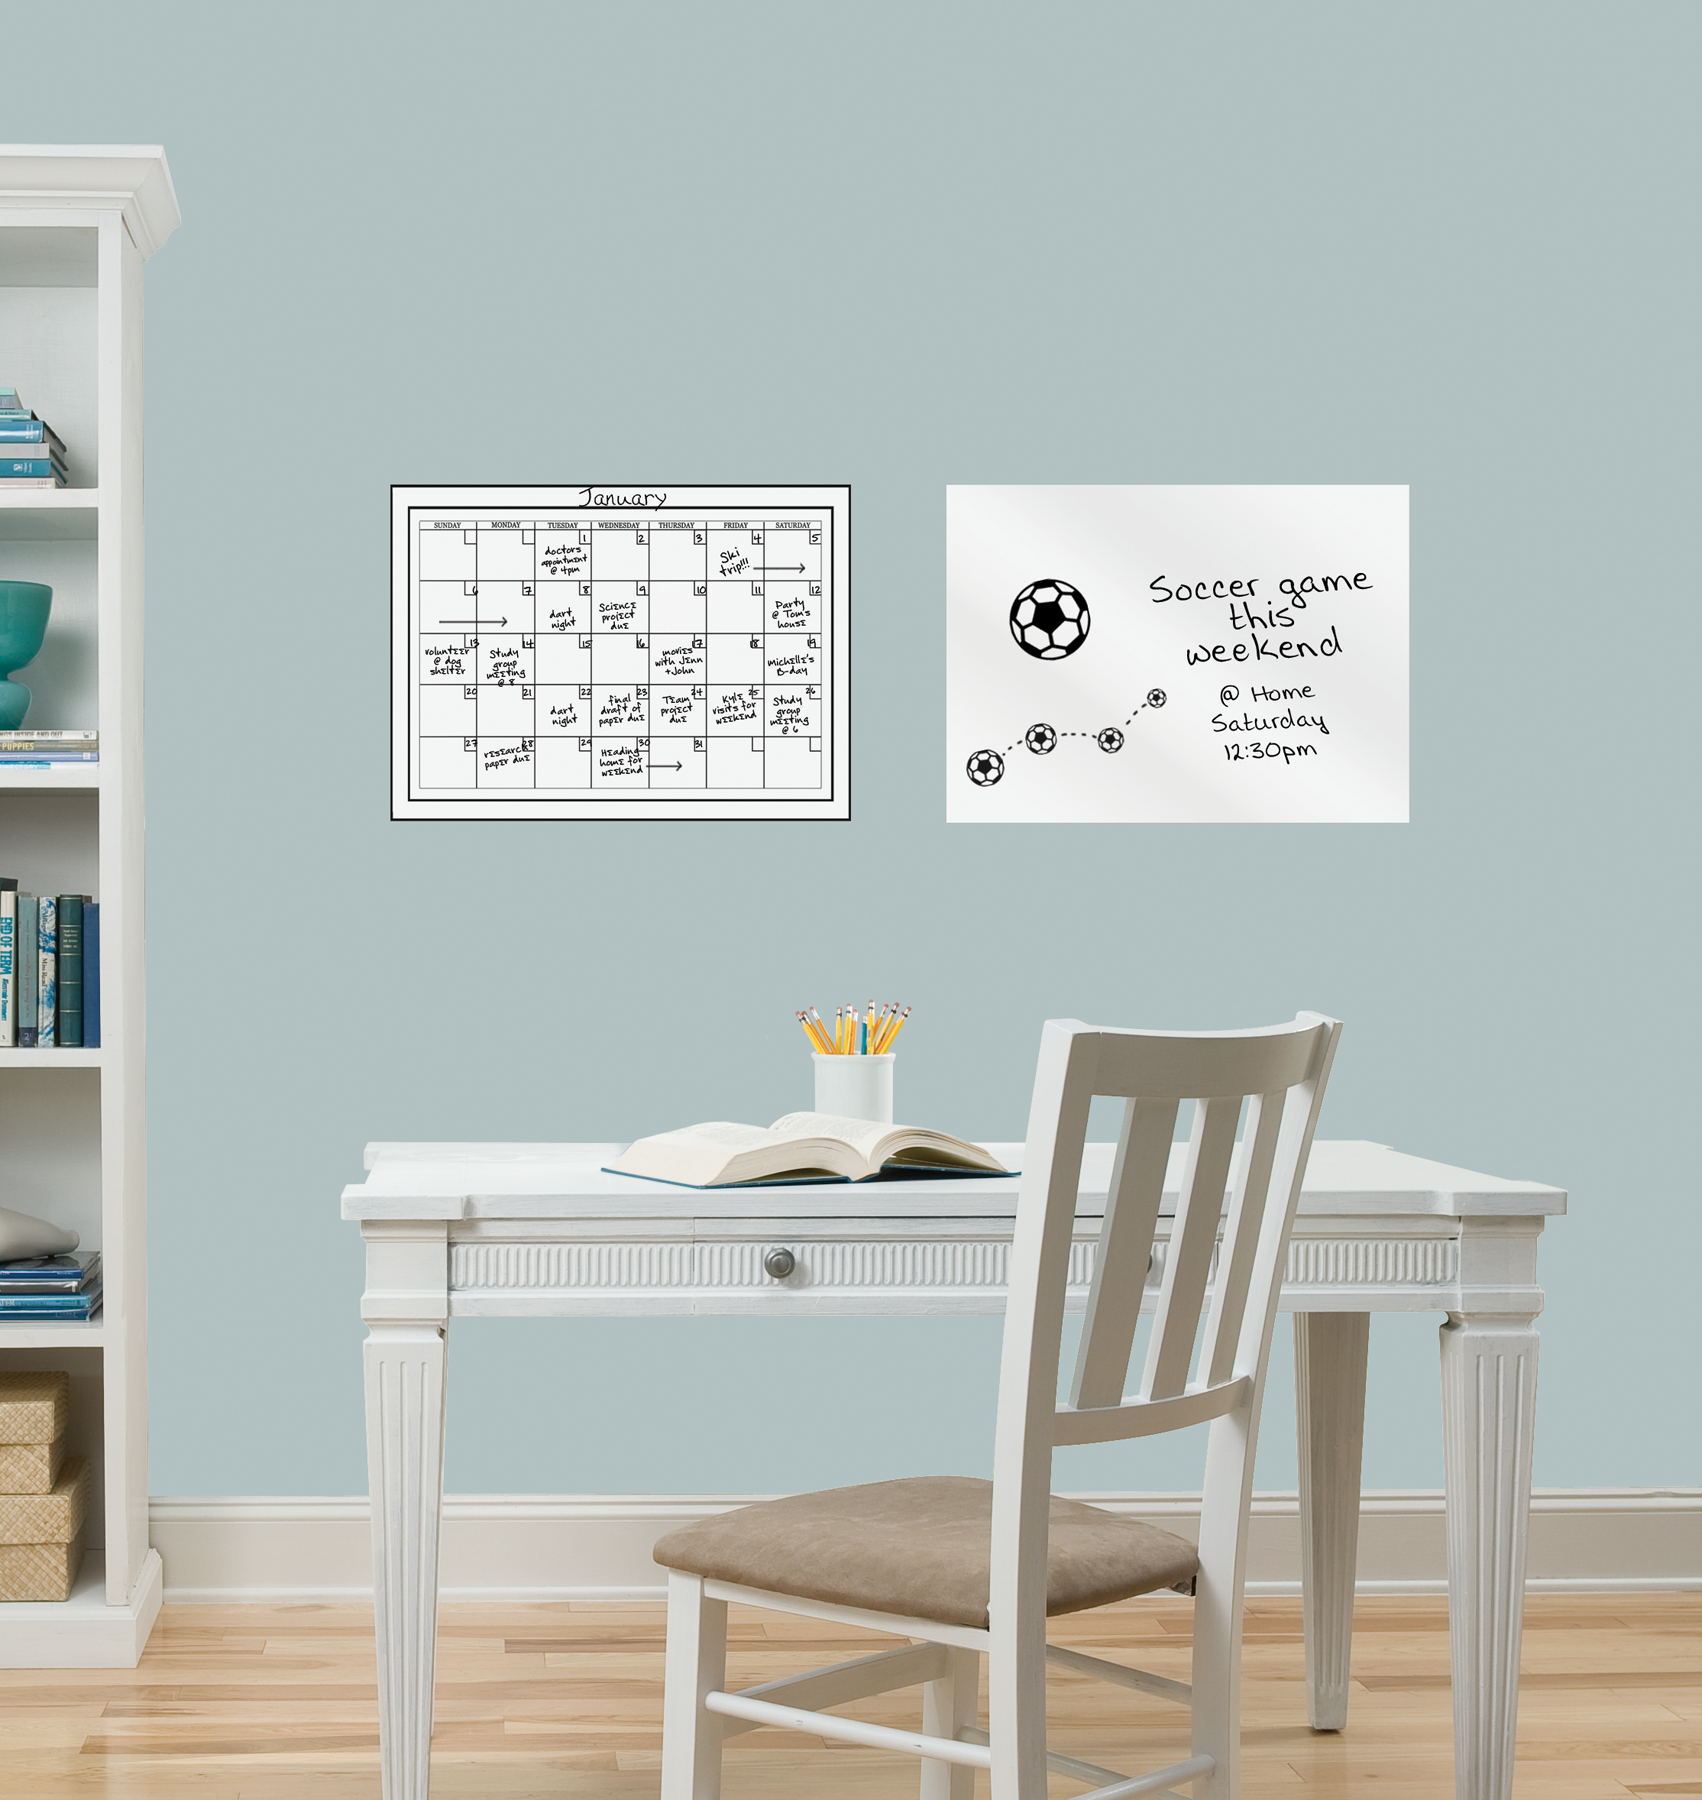 Monthly Whiteboard Dry Erase Calendar and Message Board Decal d28104eb2b13